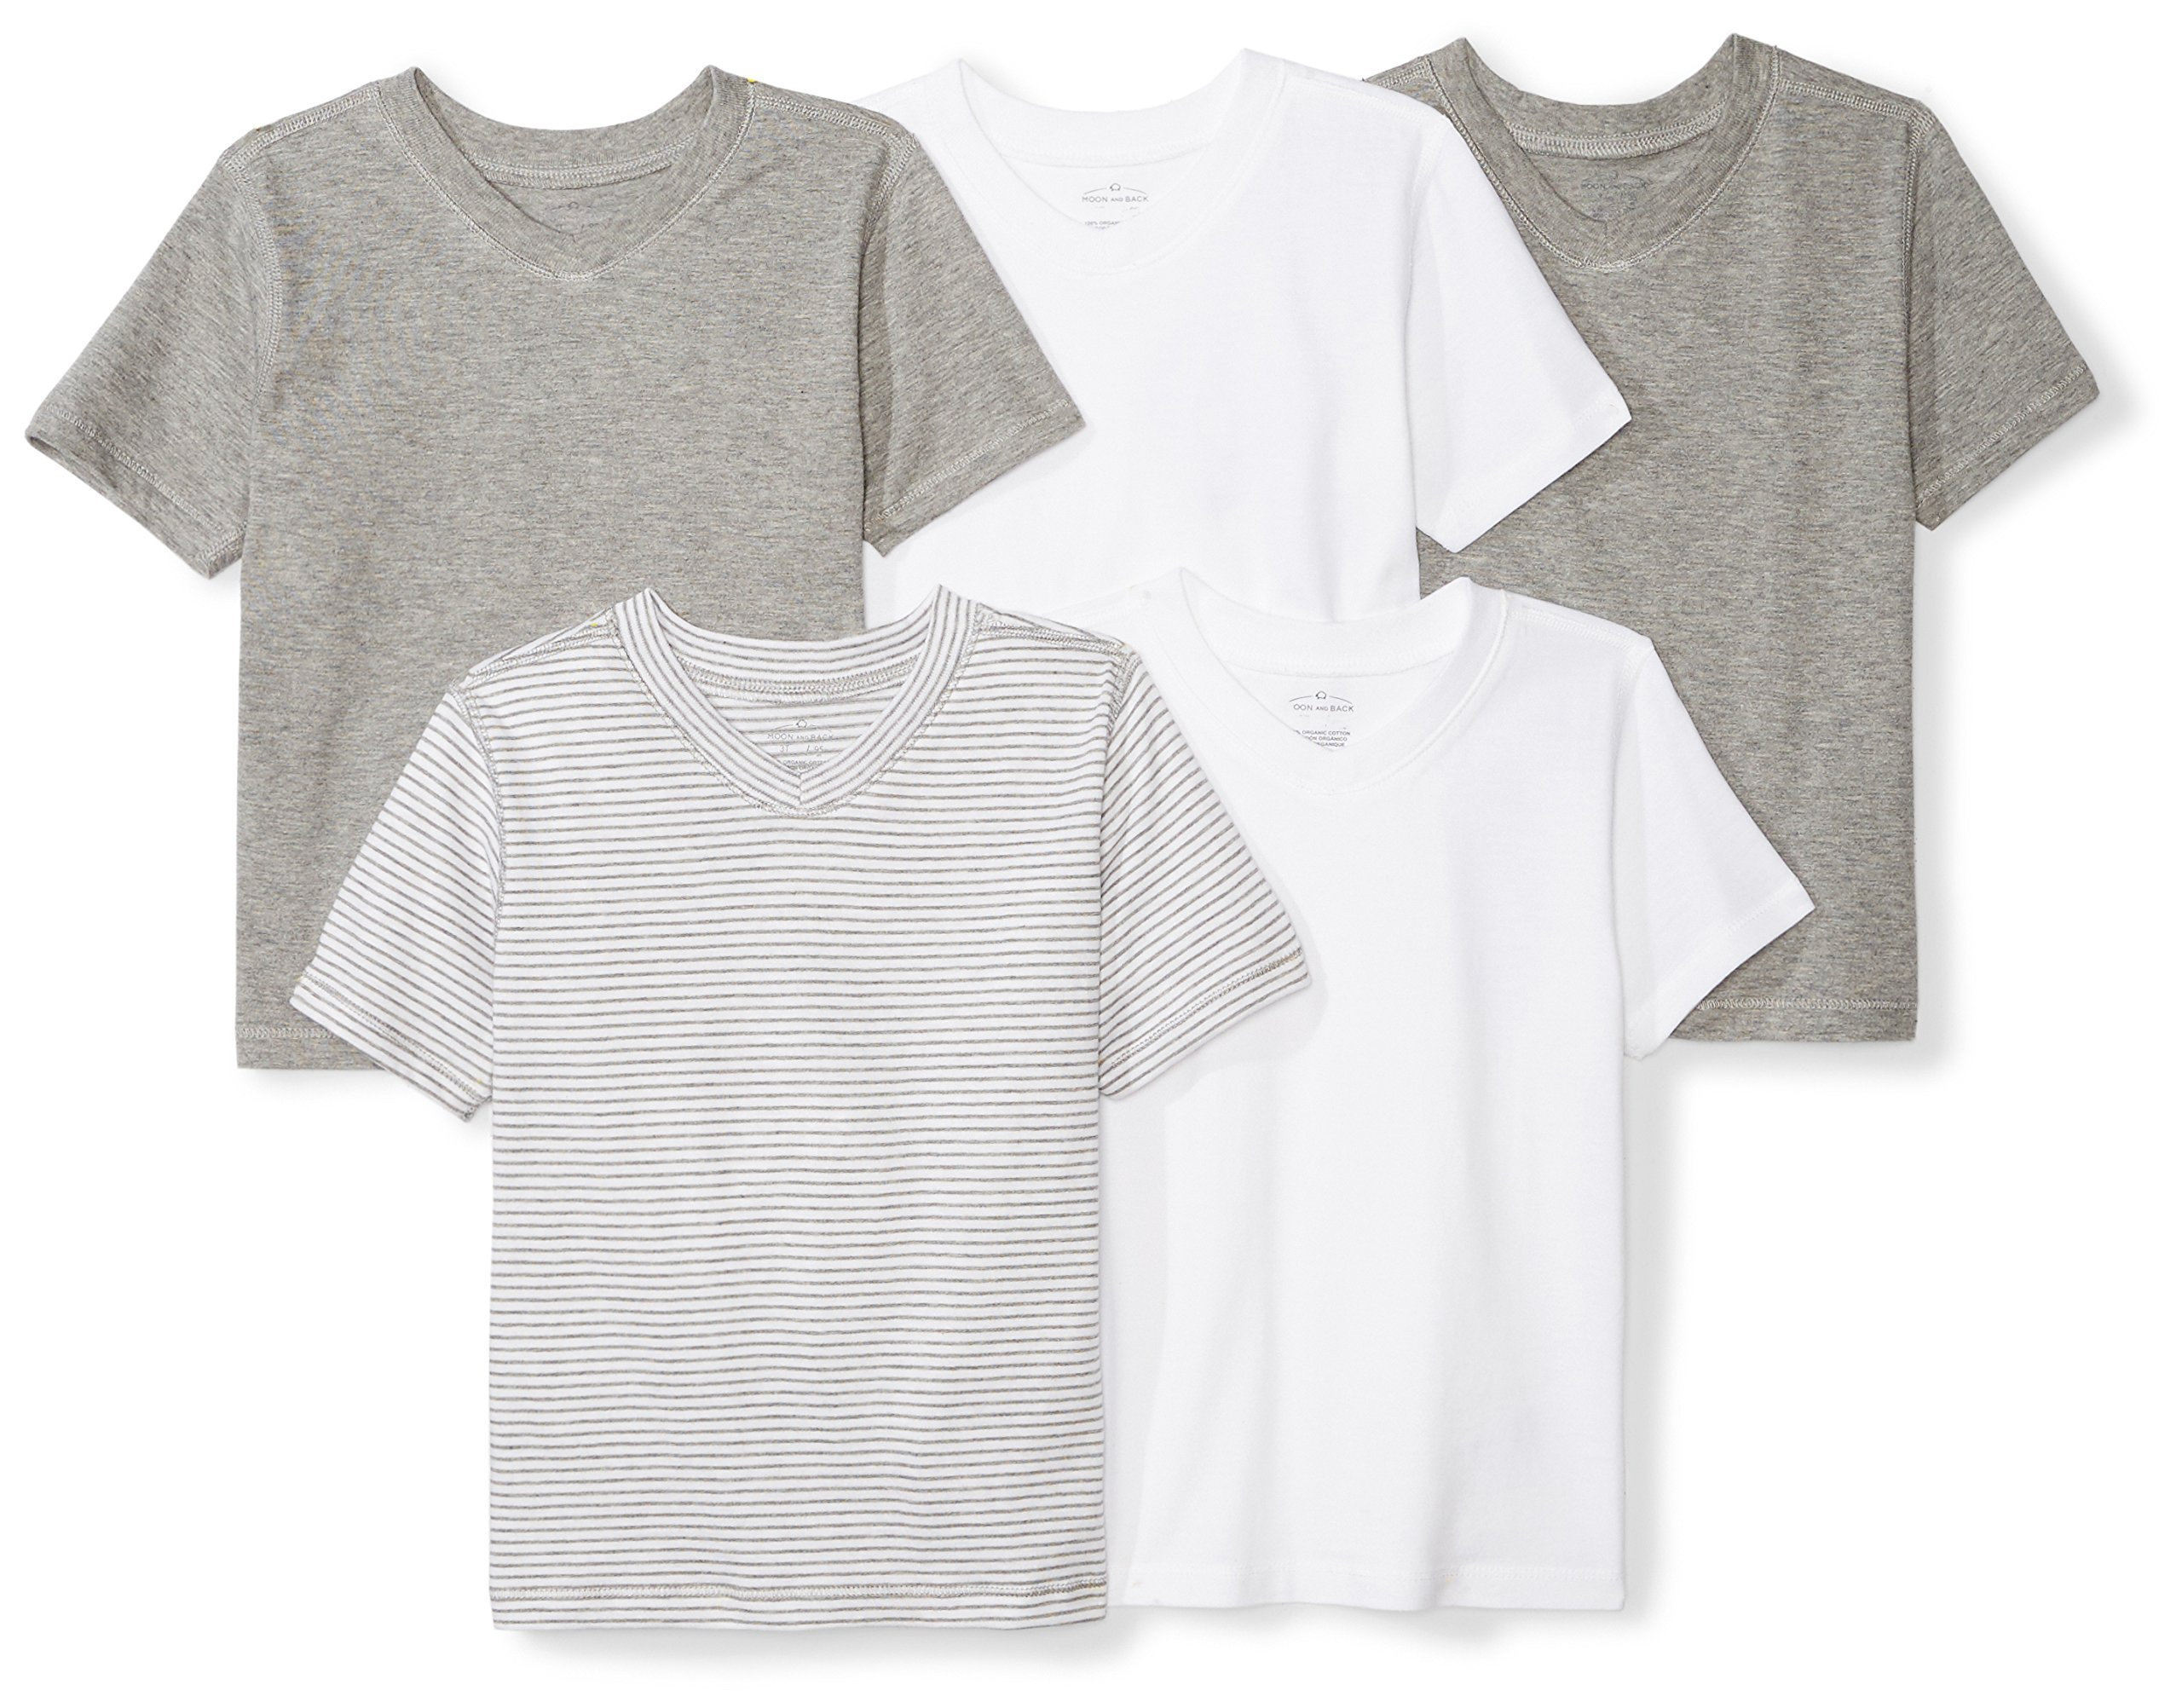 Moon and Back Set of 5 Organic V-Neck Short-Sleeve T-Shirts, Grey Multi, 24 Months by Moon and Back